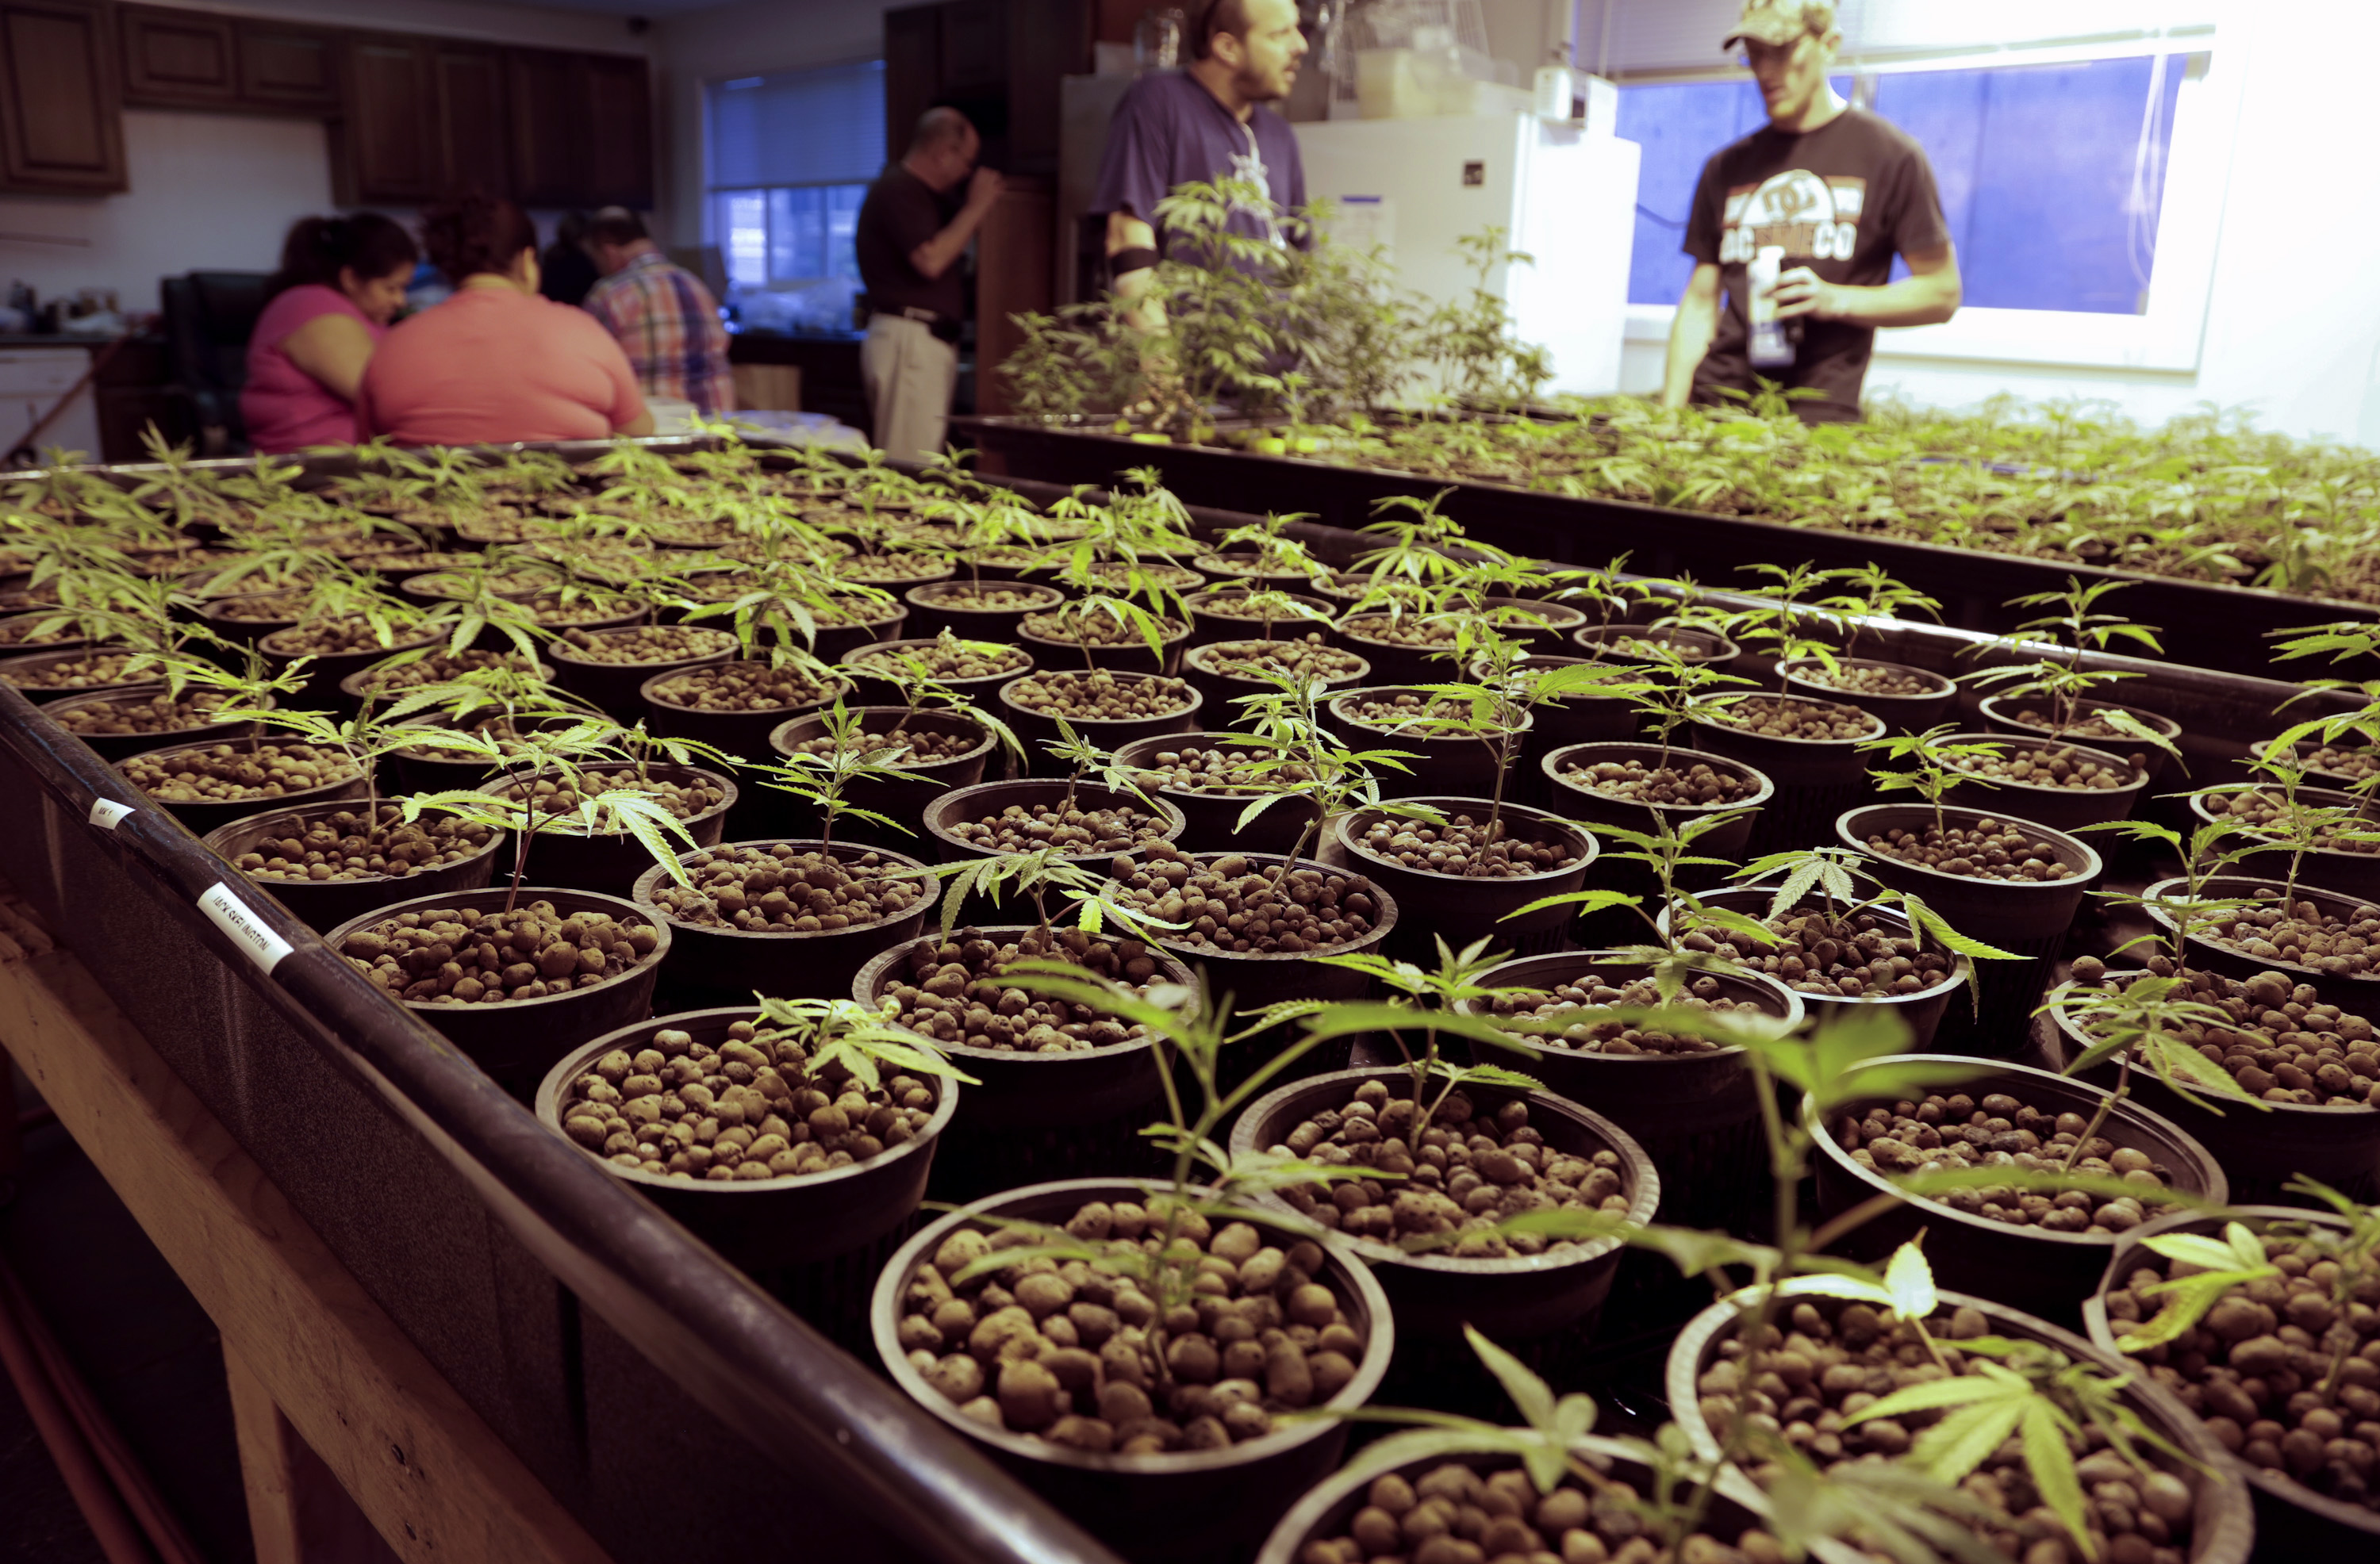 Sensational No Welfare For Weed Bill Passes In The House Cbs News Download Free Architecture Designs Scobabritishbridgeorg